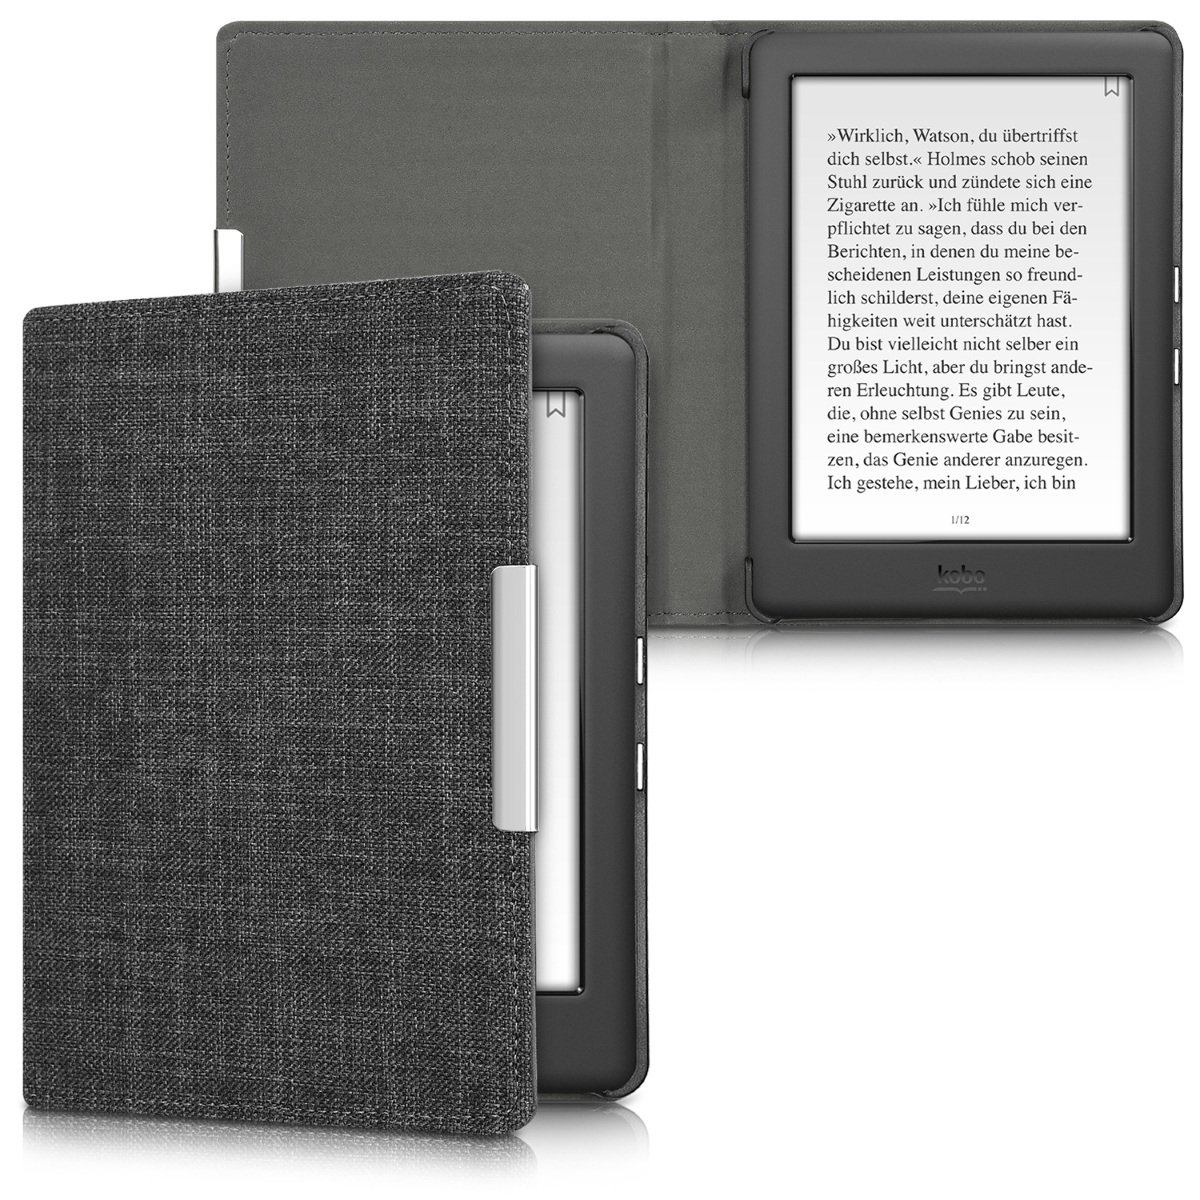 kwmobile Case for Kobo Glo HD (N437) / Touch 2.0 - Book Style Fabric Protective e-Reader Cover Flip Folio Case - Dark Grey KW-Commerce 43008.19_m000394